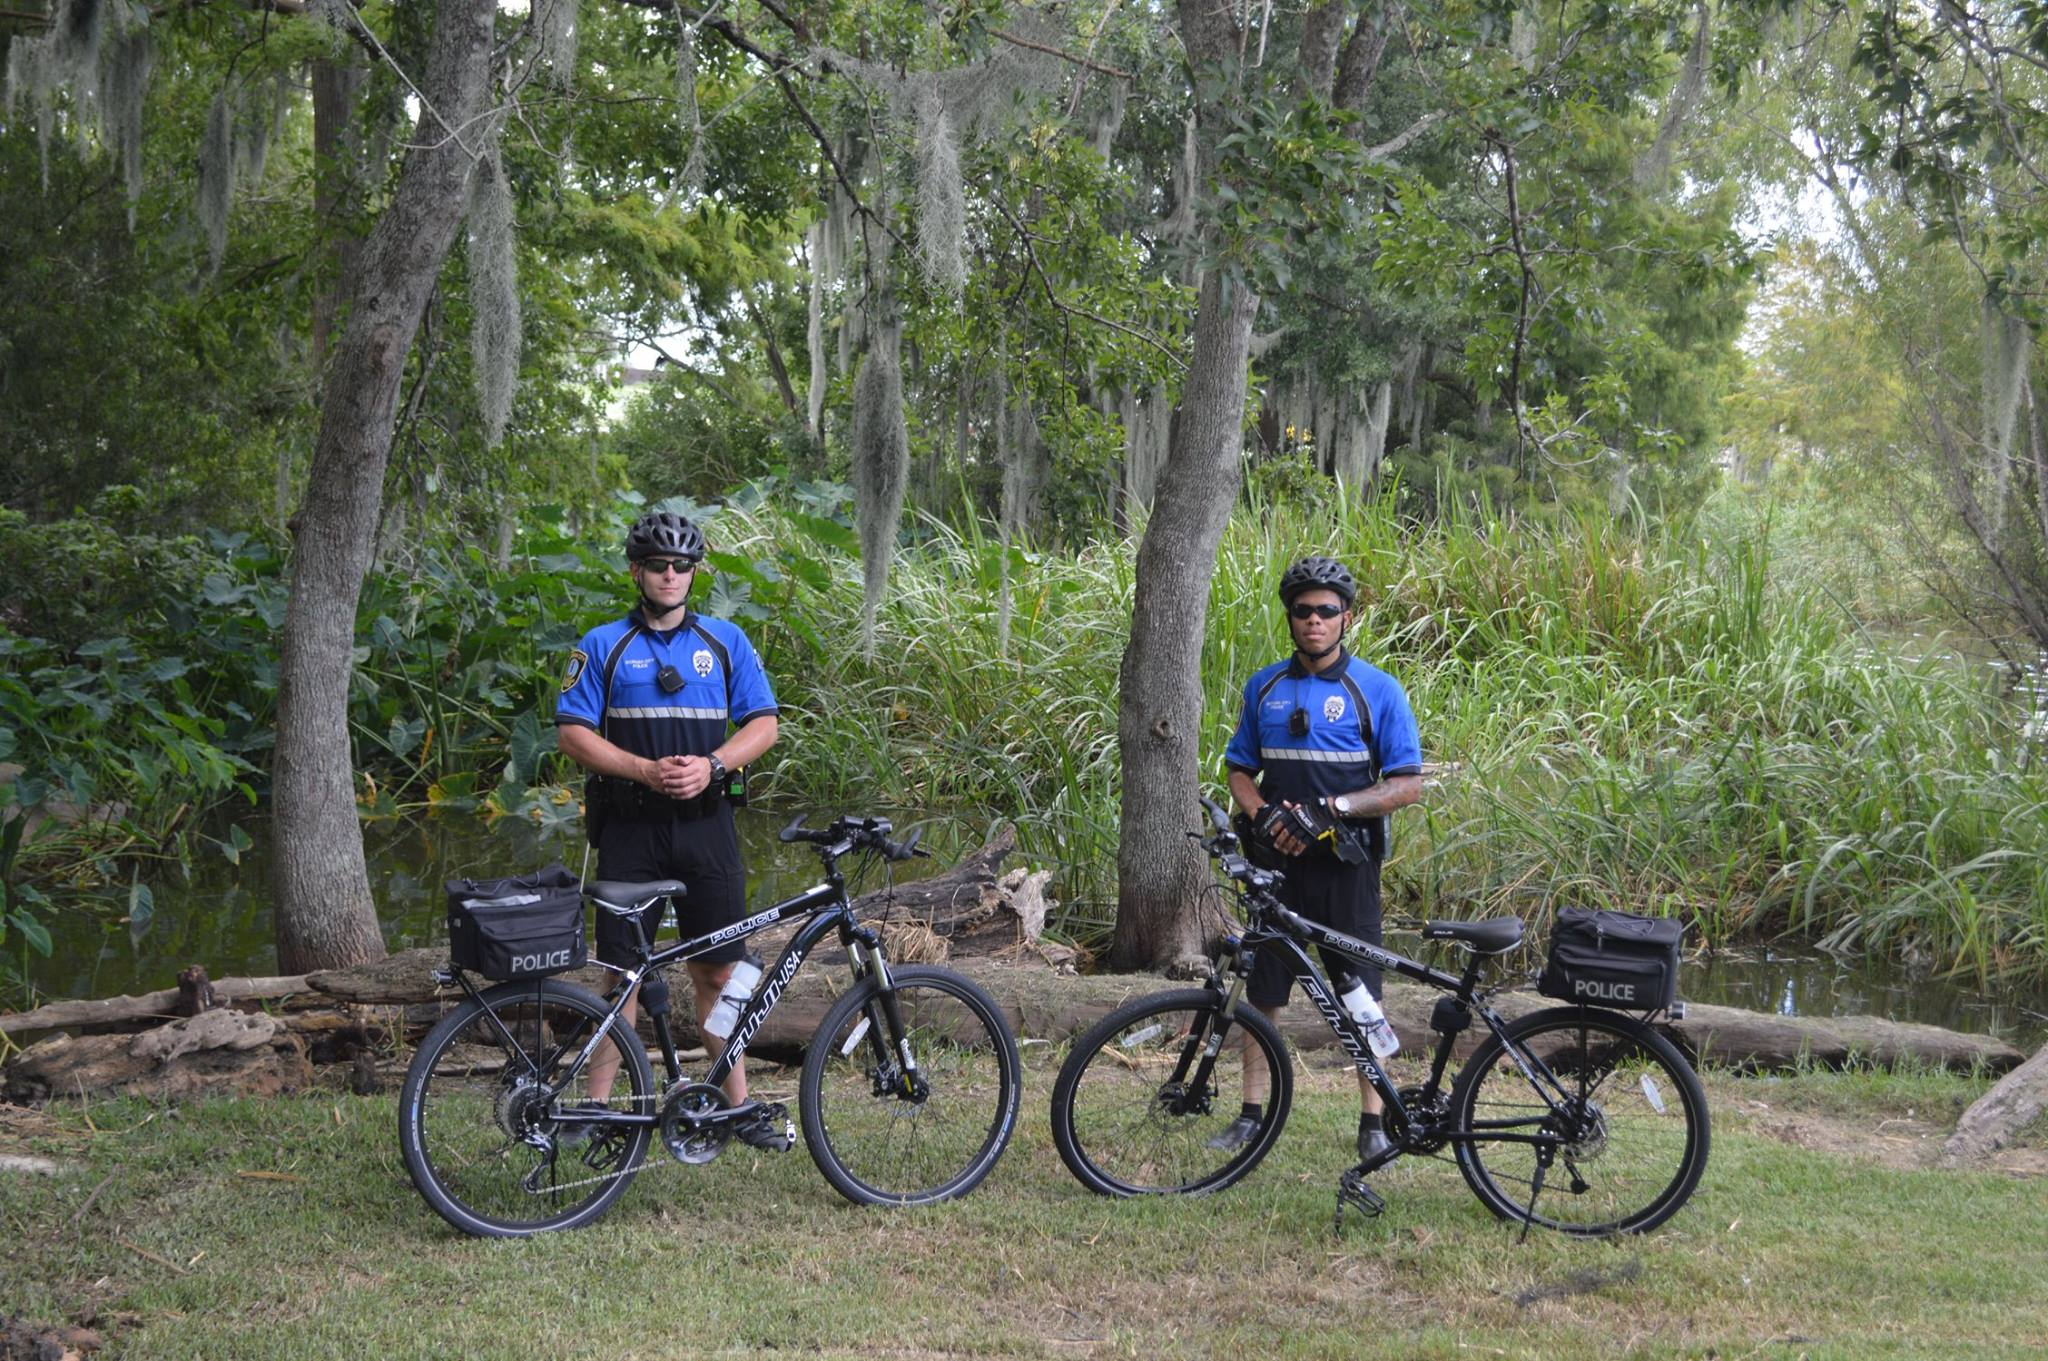 Morgan City Police Department begins bike patrol